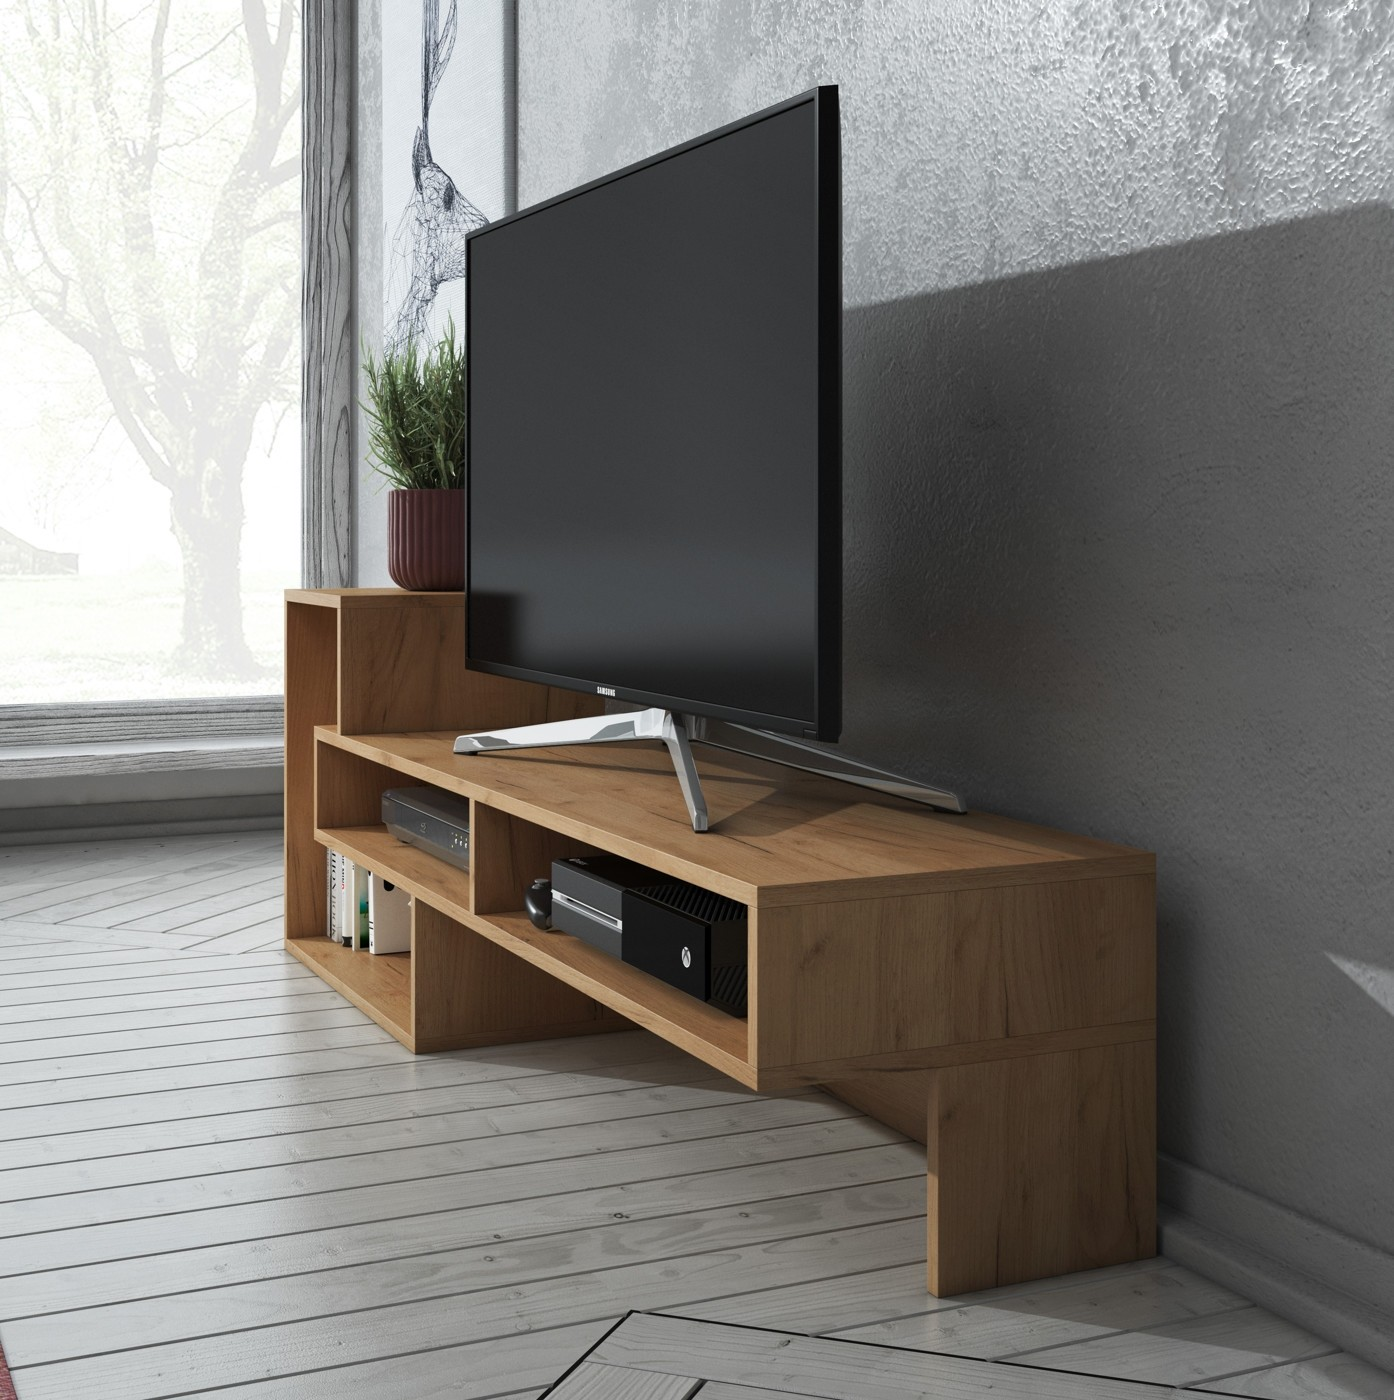 Tv meubel olive eiken meubella for Showroommodellen design meubels